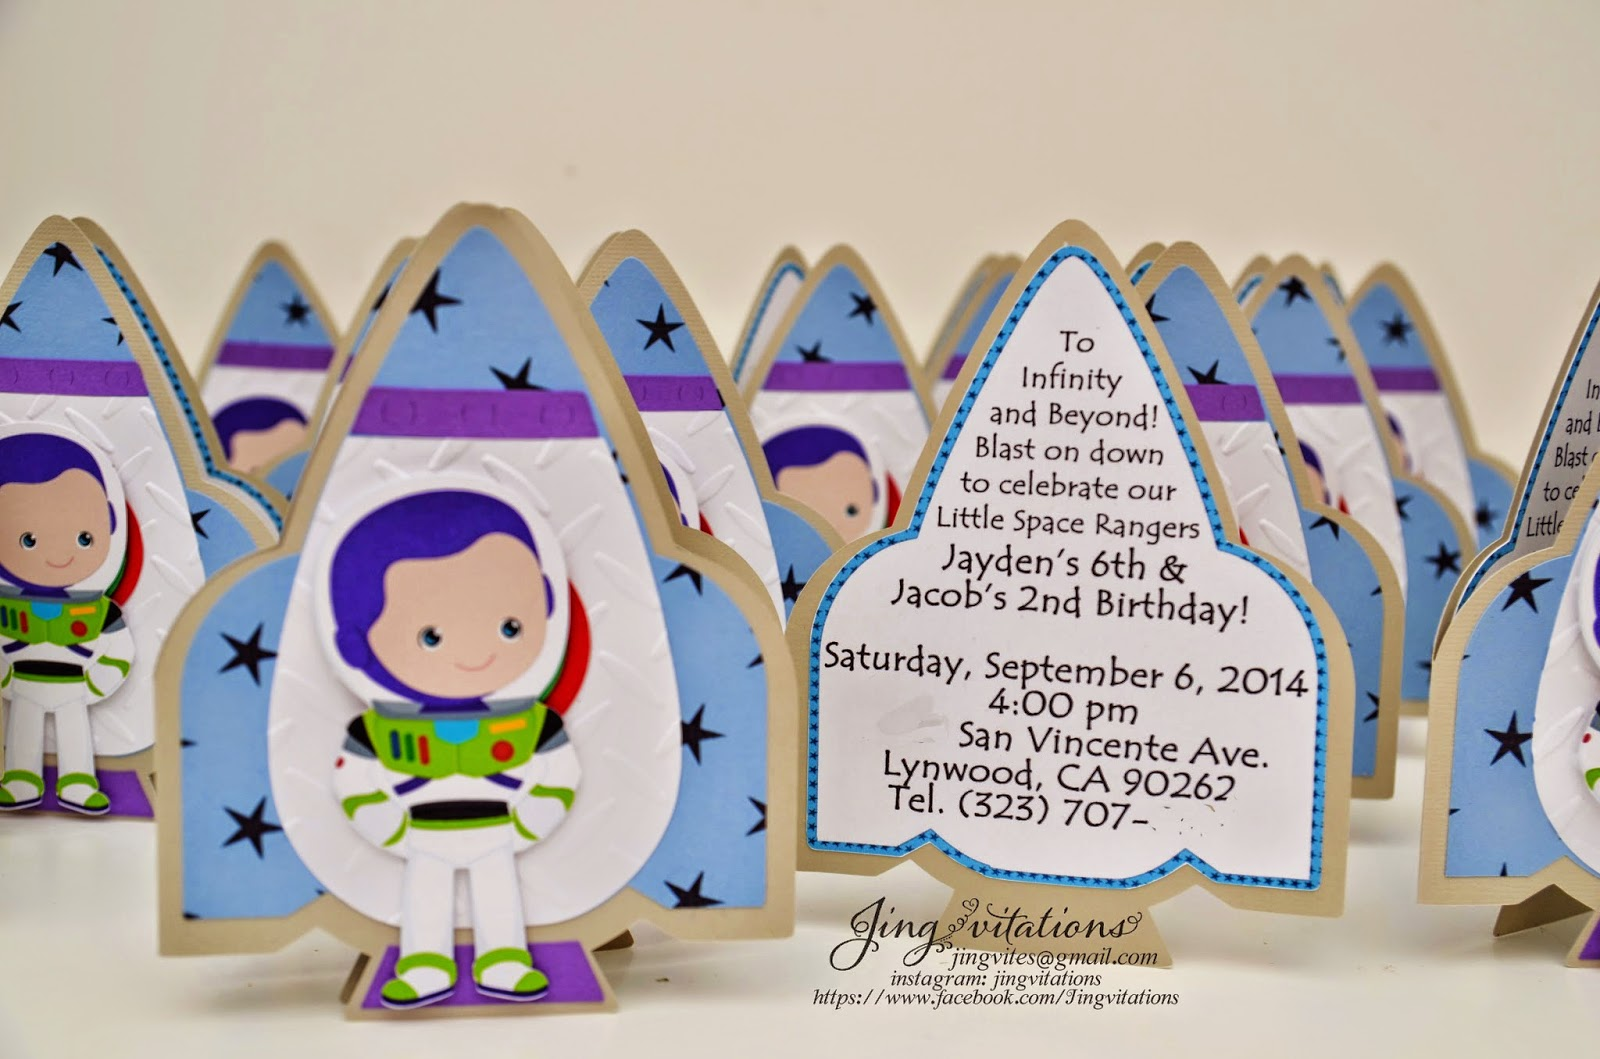 You Might Also Like Toy Story Rocketship Outerspace Invitations